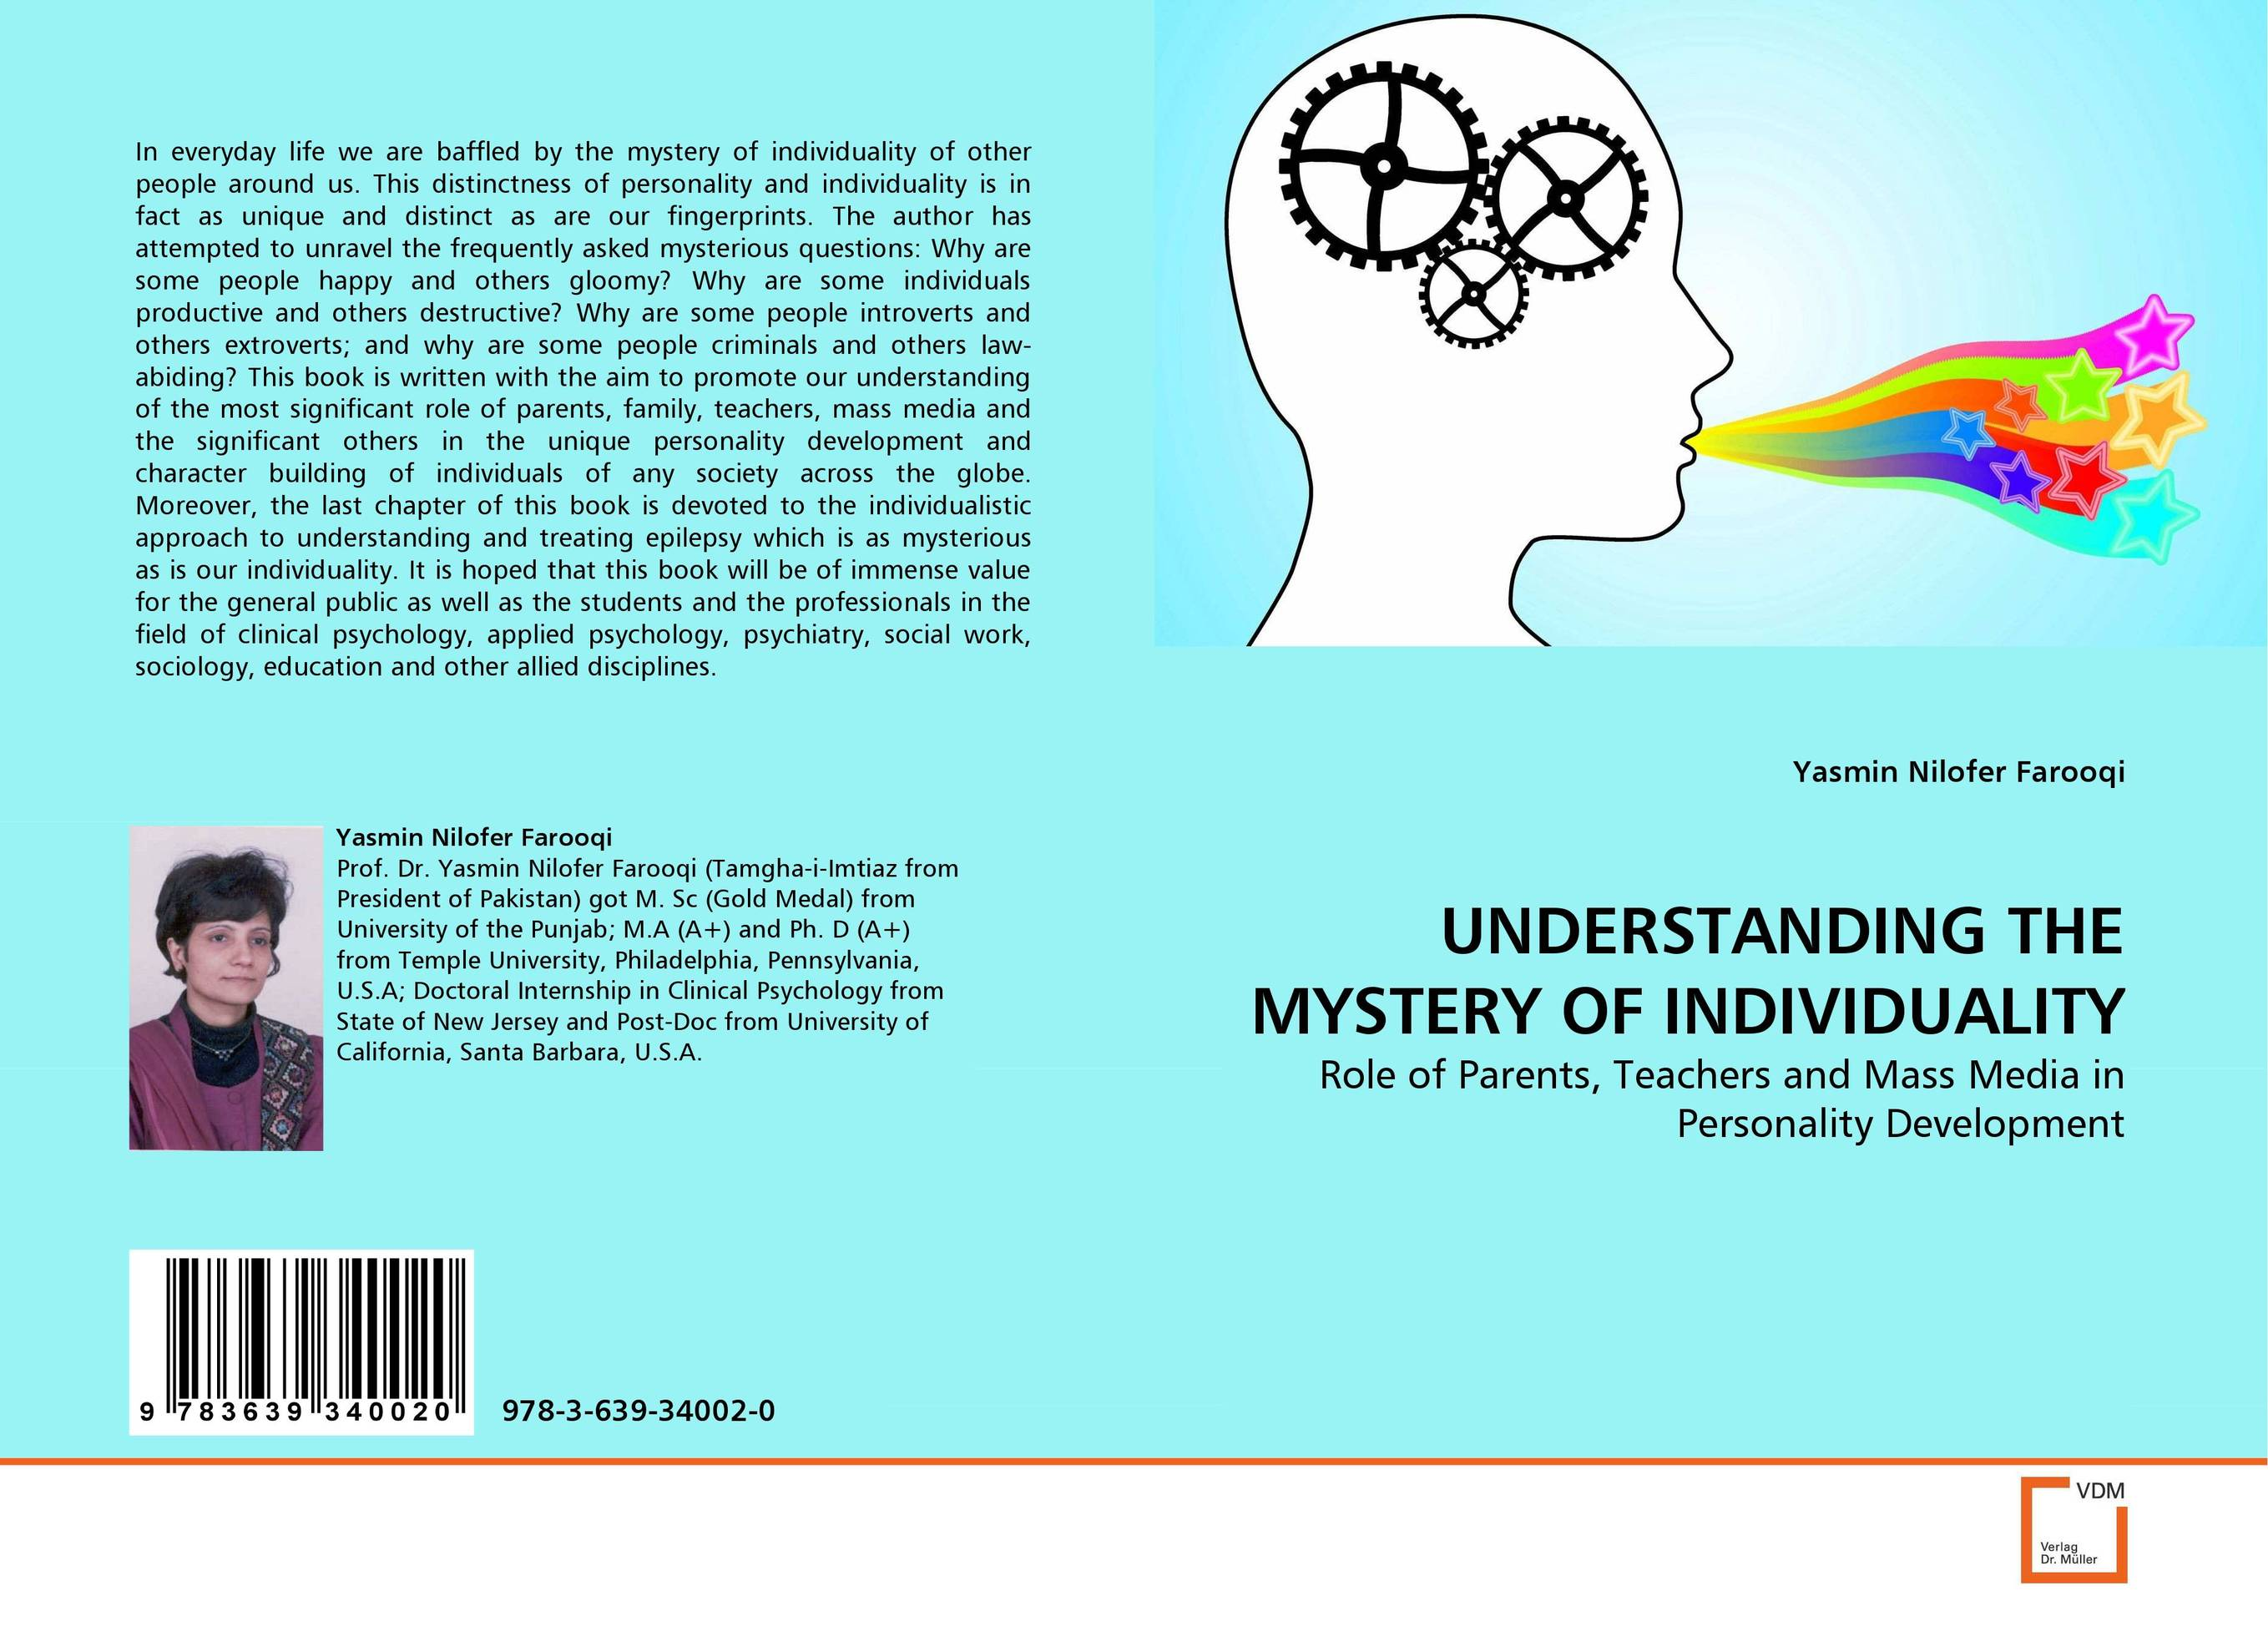 UNDERSTANDING THE MYSTERY OF INDIVIDUALITY mastering the challenges of leading change inspire the people and succeed where others fail